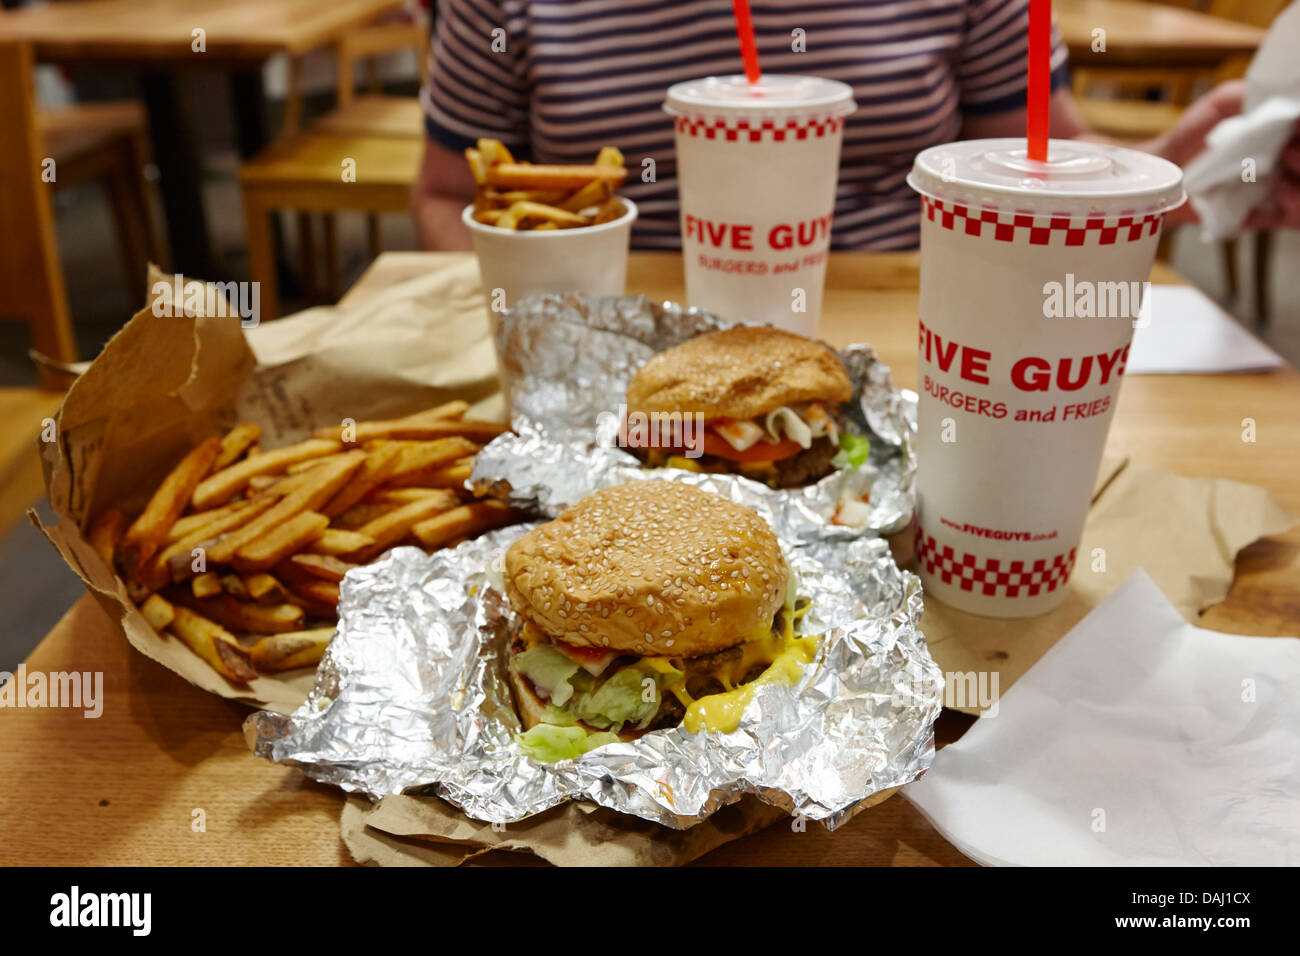 burger and fries from five guys burger restaurant newly opened in covent garden london, england uk - Stock Image